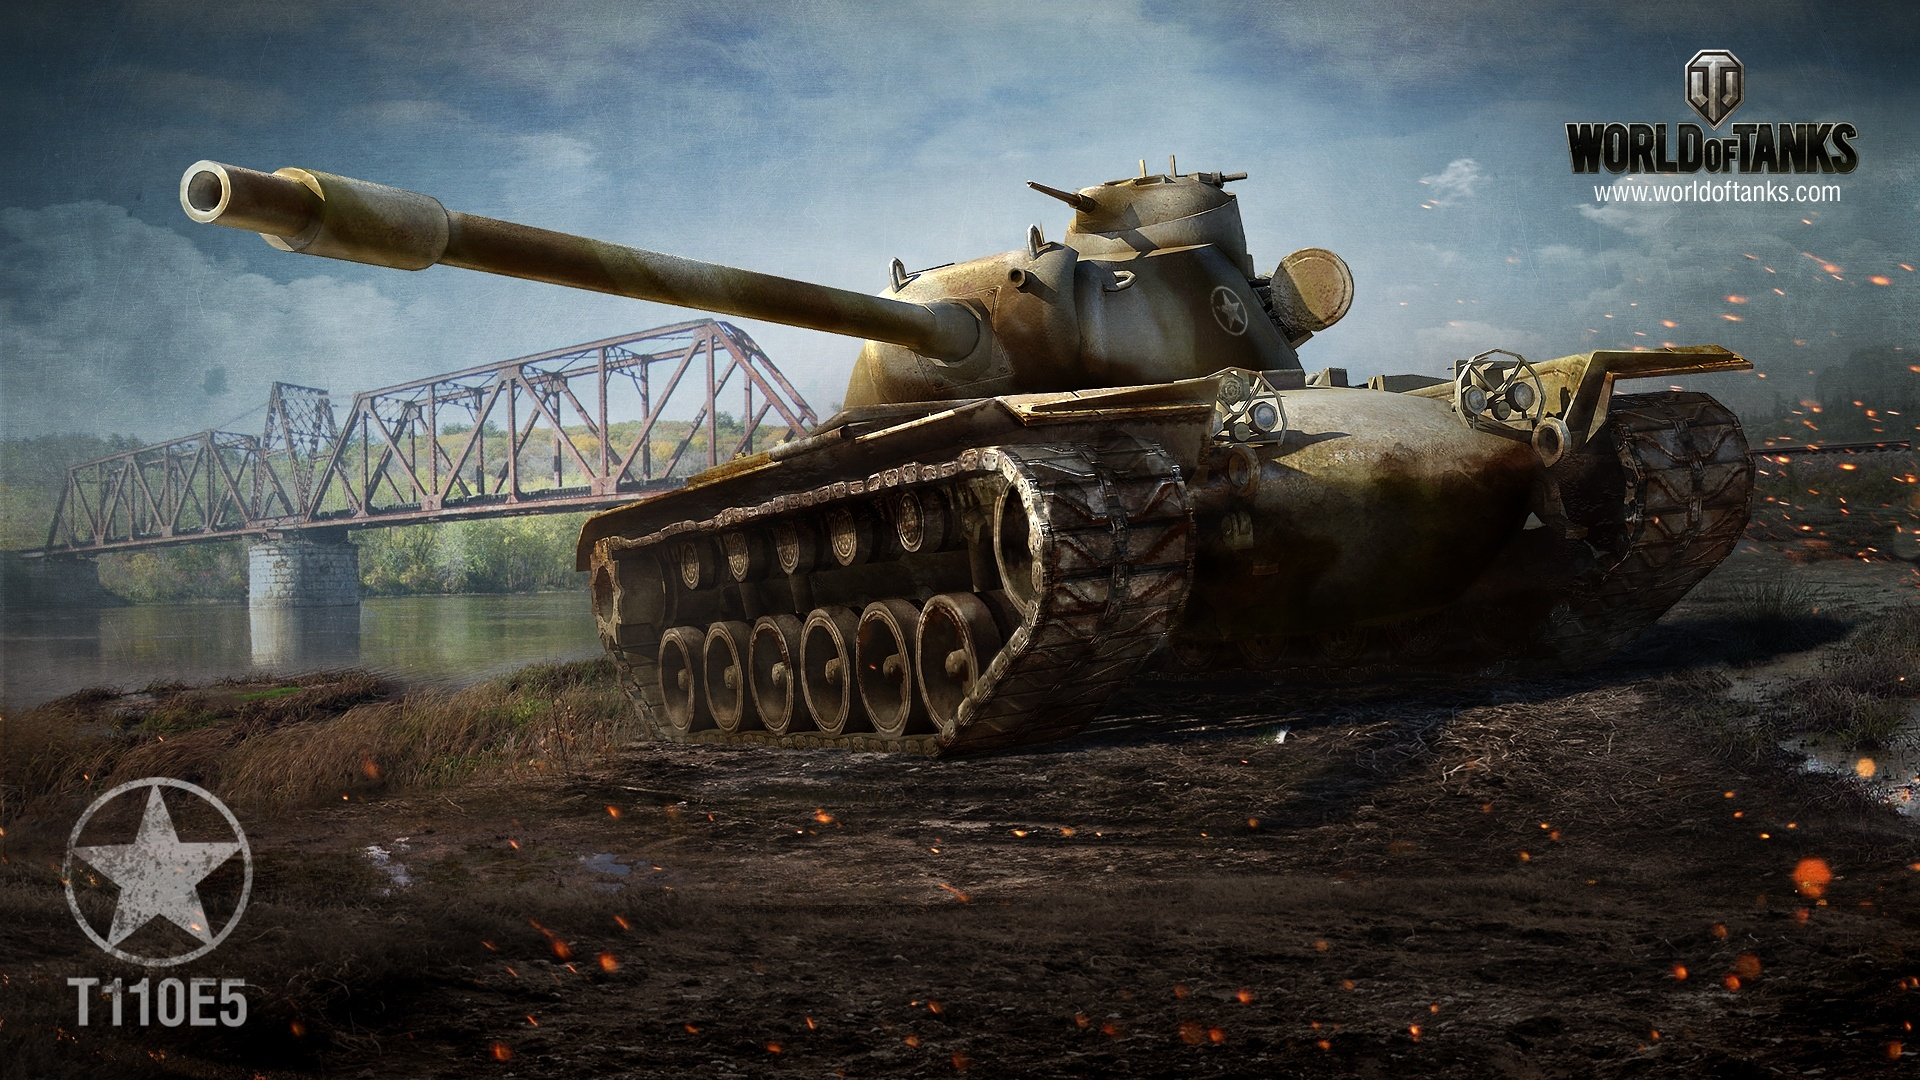 World Of Tanks Wallpapers Widescreen – Epic Wallpaperz